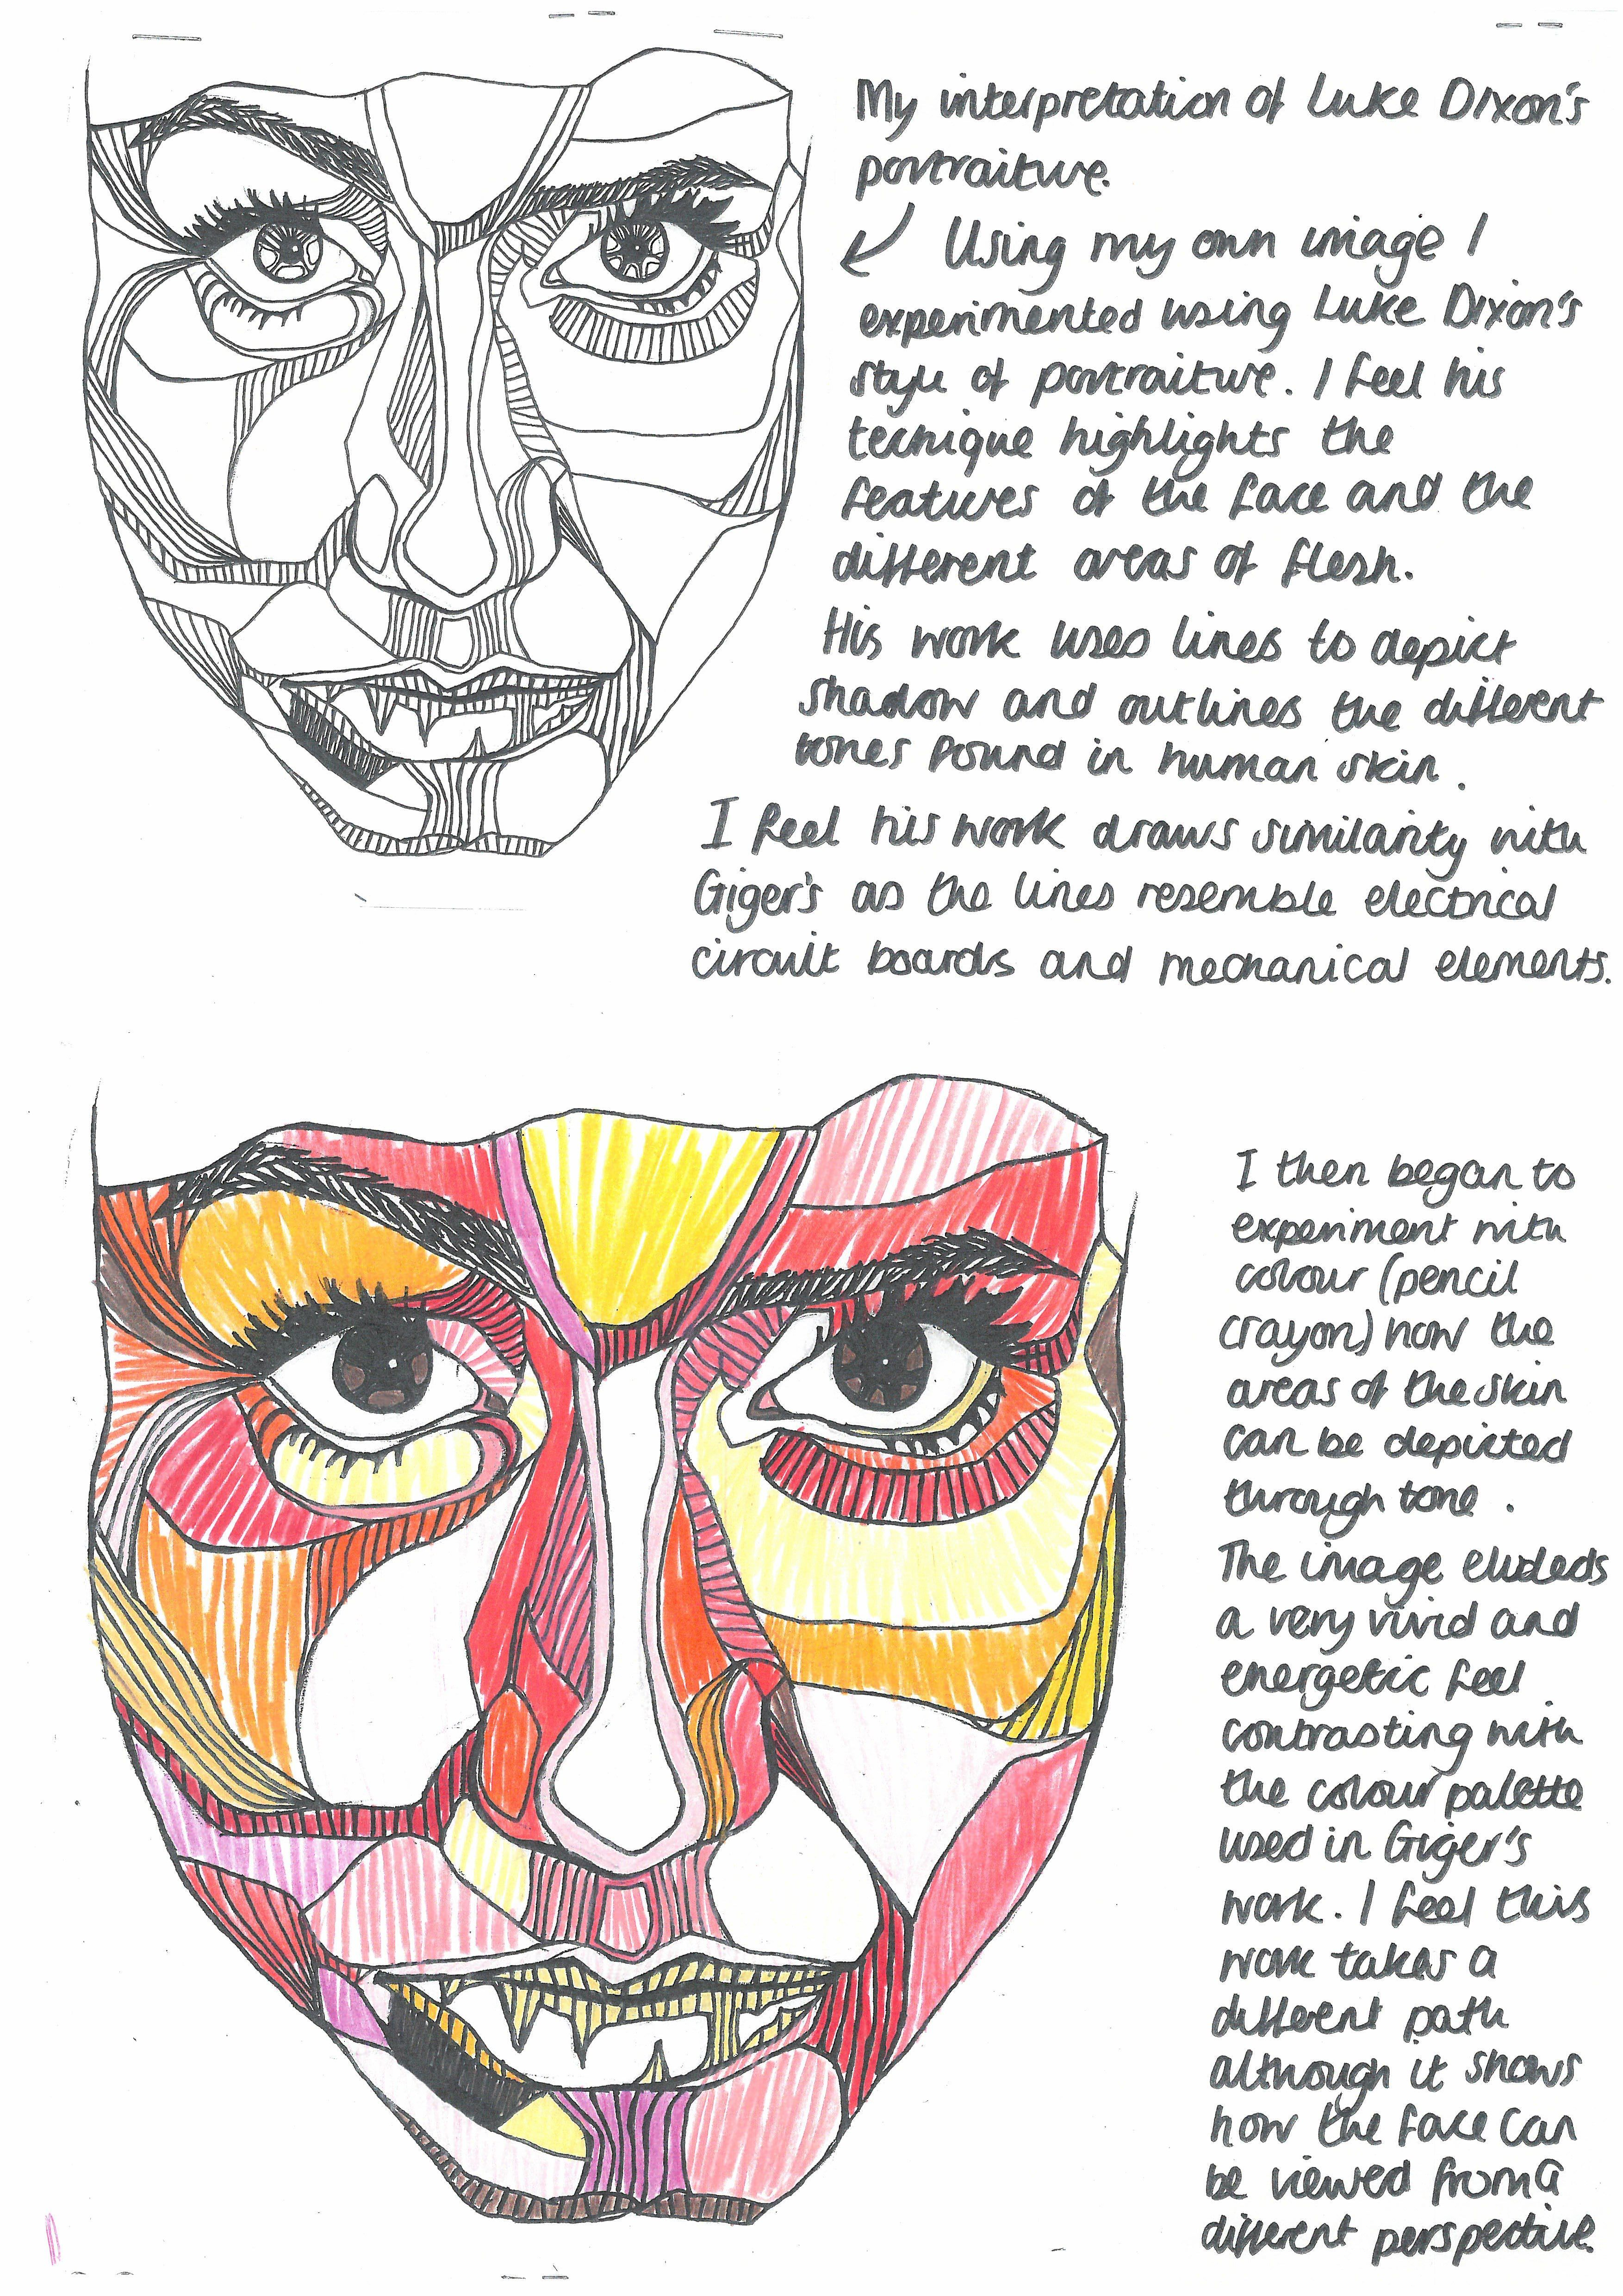 Pin By Brieahn March On Teaching Portraiture In